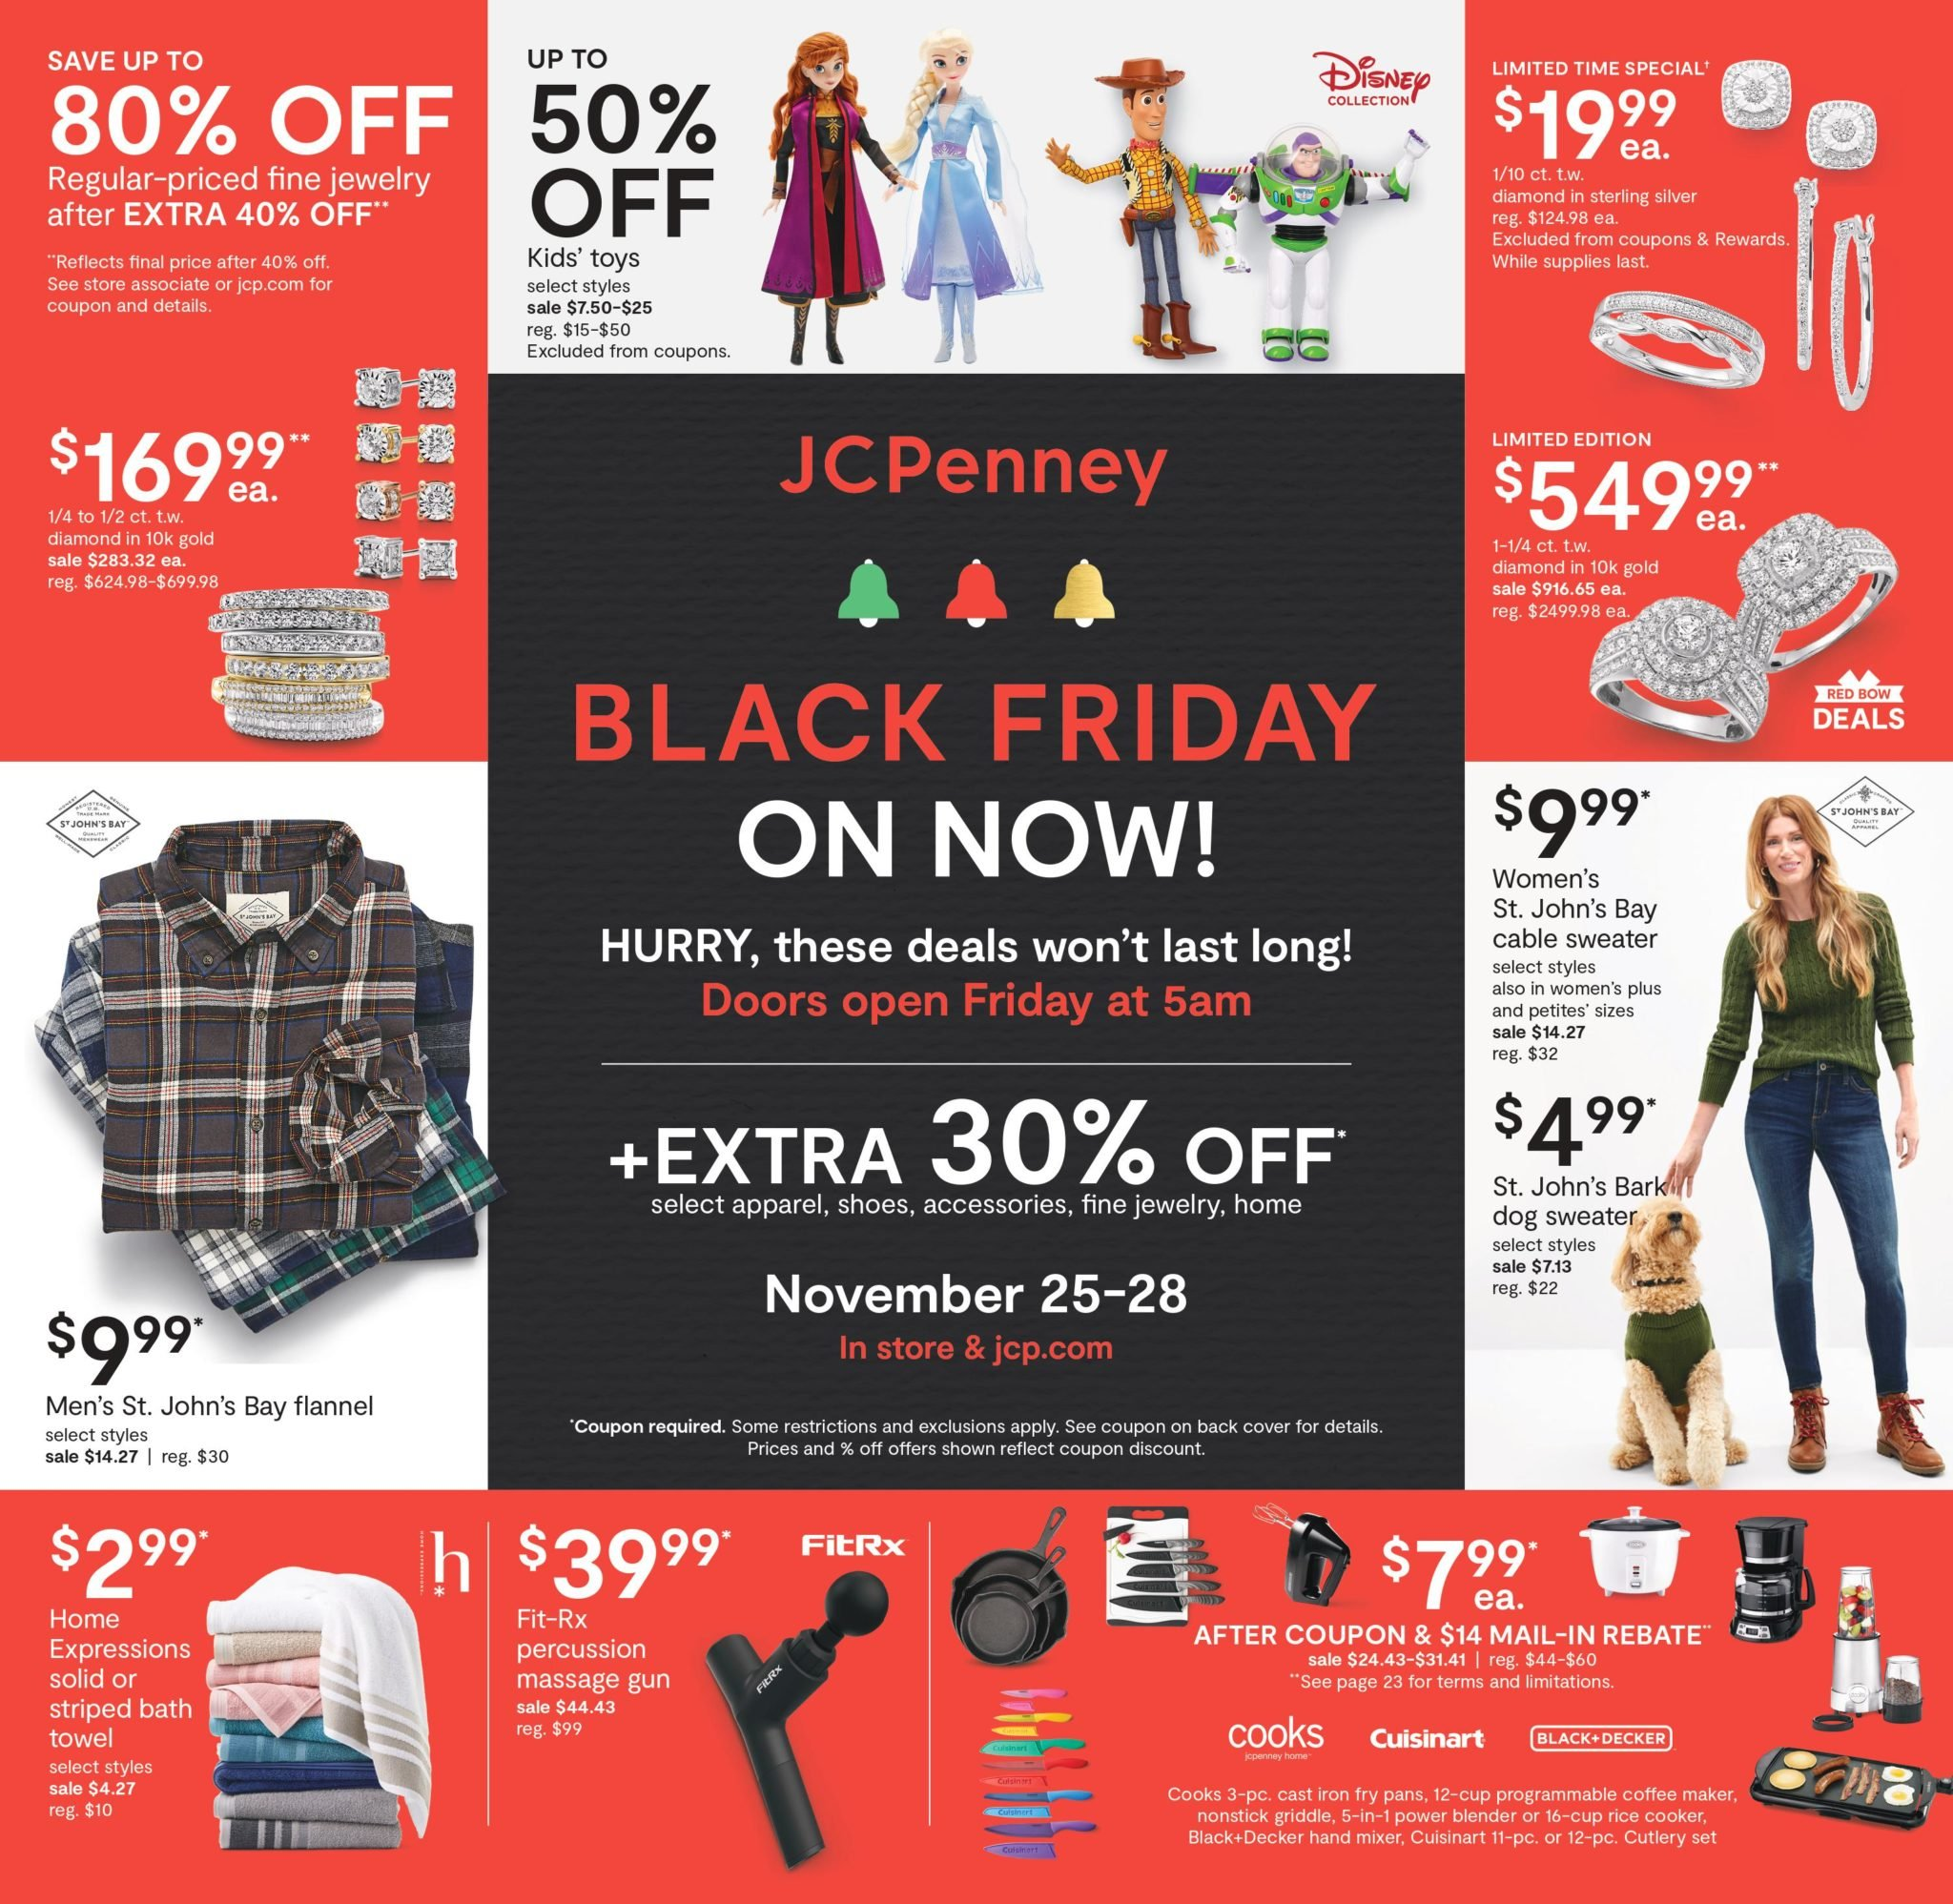 JCPenney Black Friday Ad Sale 2021